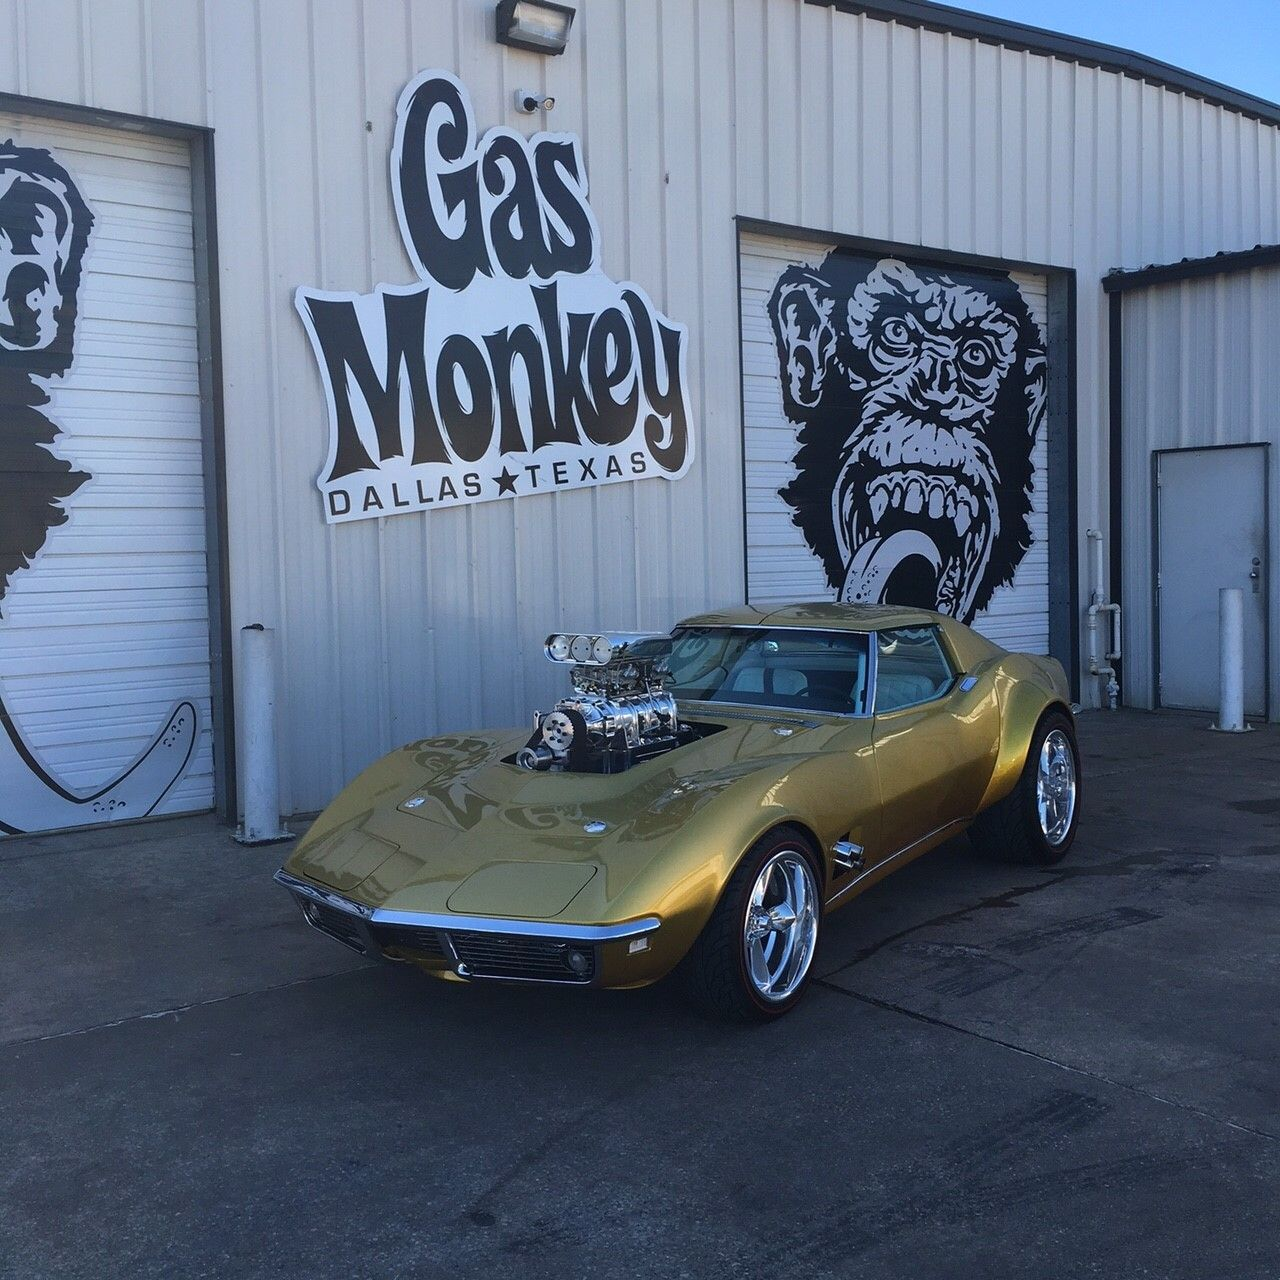 Gas monkey garage gas monkey pinterest garage monkey and gas - Gas Monkey Garage Needed To Add Some Power To Their Latest Creation So They Called